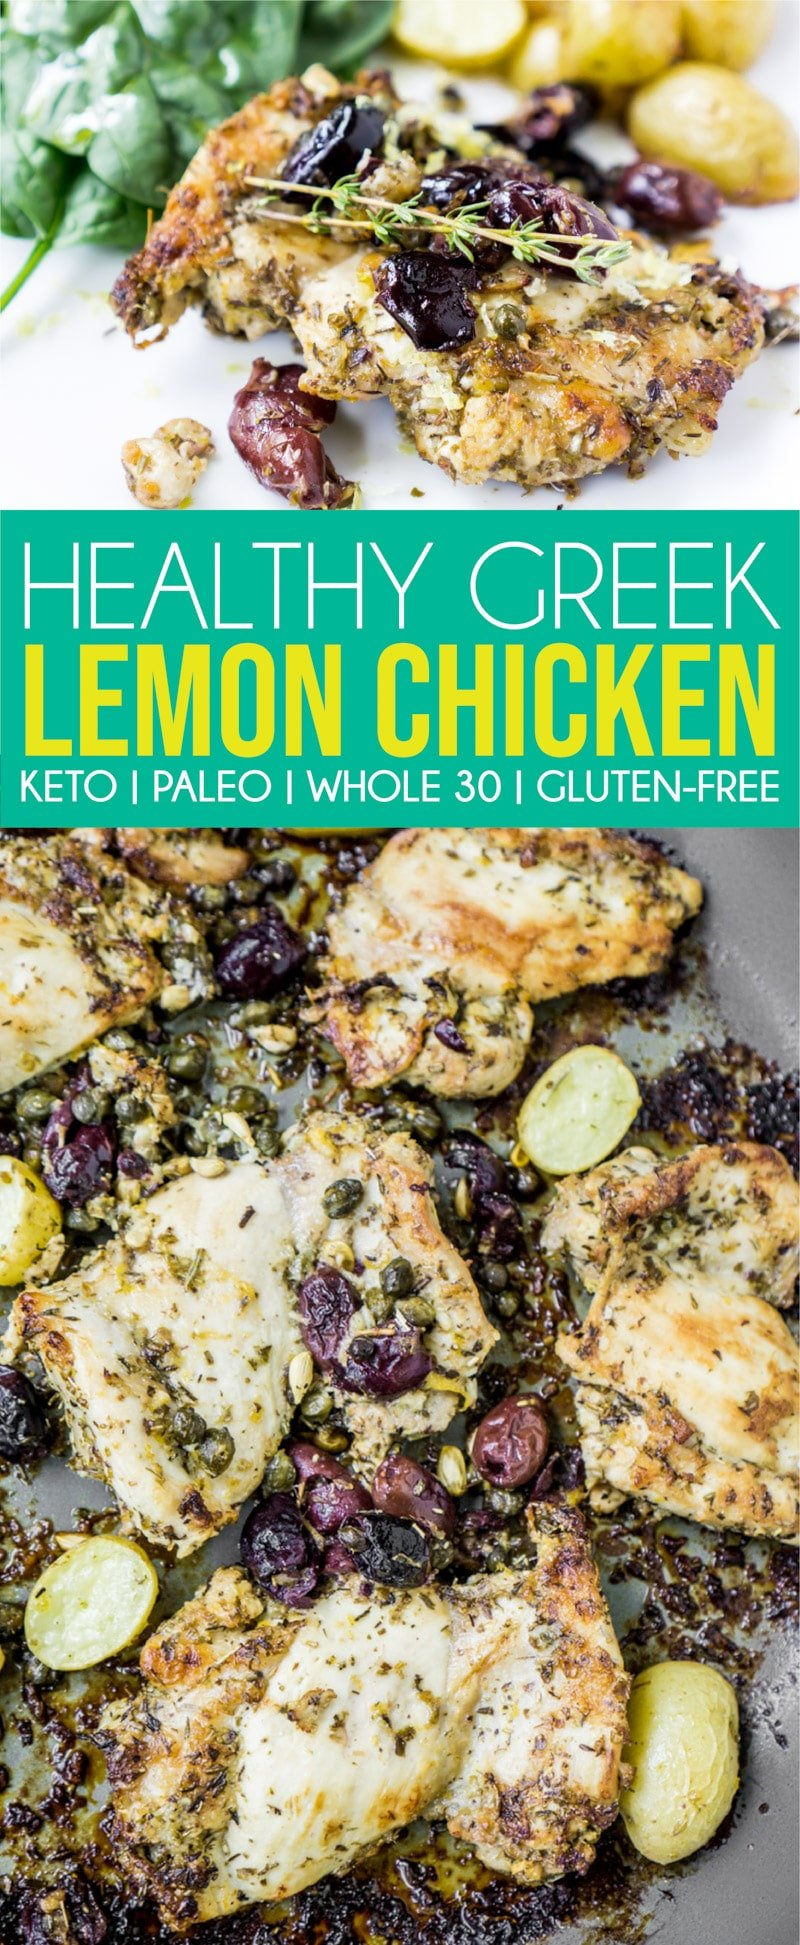 These baked chicken thighs are started with a quick fry in a skillet then finish off in the oven! The lemon and Greek flavors together combine for one healthy and delicious meal! Perfect for anyone eating keto, Whole 30, paleo, or just trying to eat healthy in general! #keto #healthy #healthyrecipes #chicken #chickenrecipes #dinner #dinnerideas